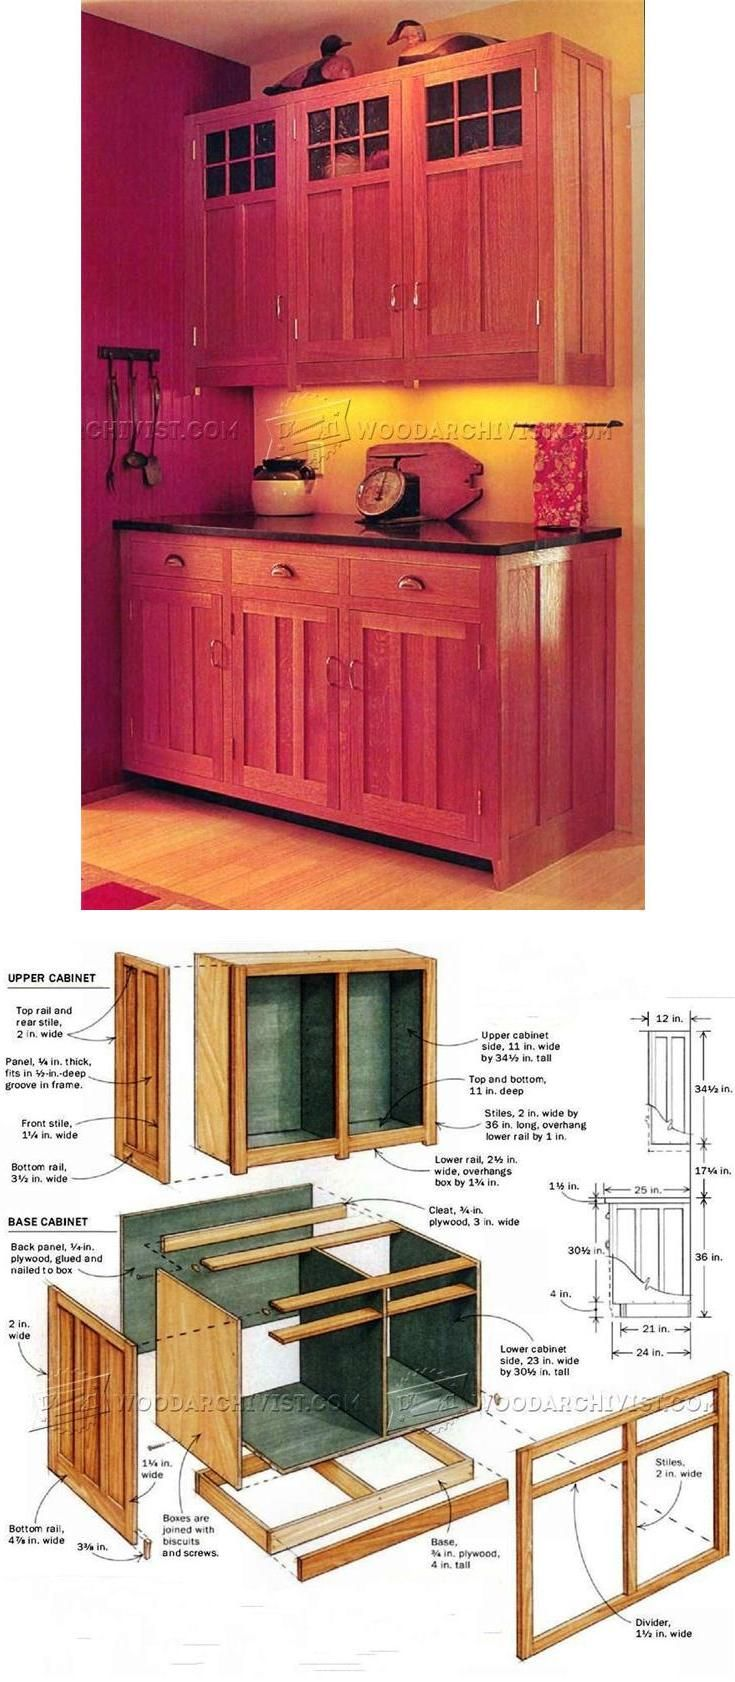 Kitchen Cabinets Plans Furniture Plans and